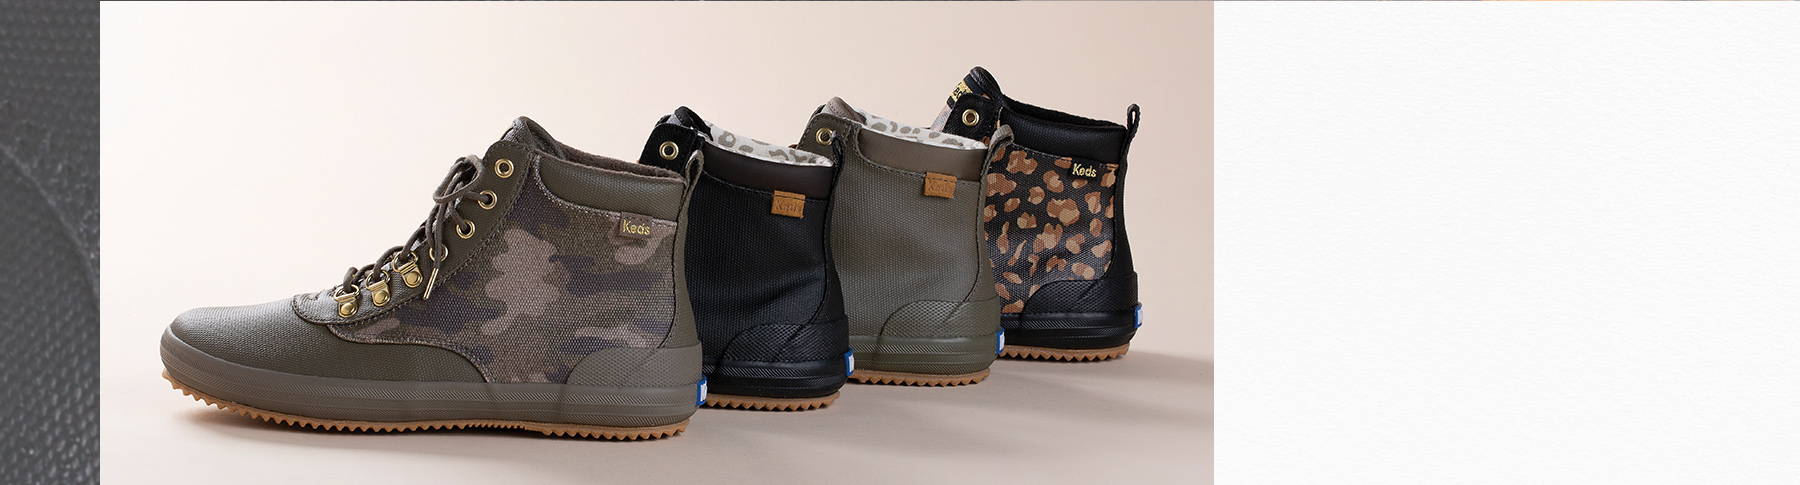 Scout boots in four different styles.